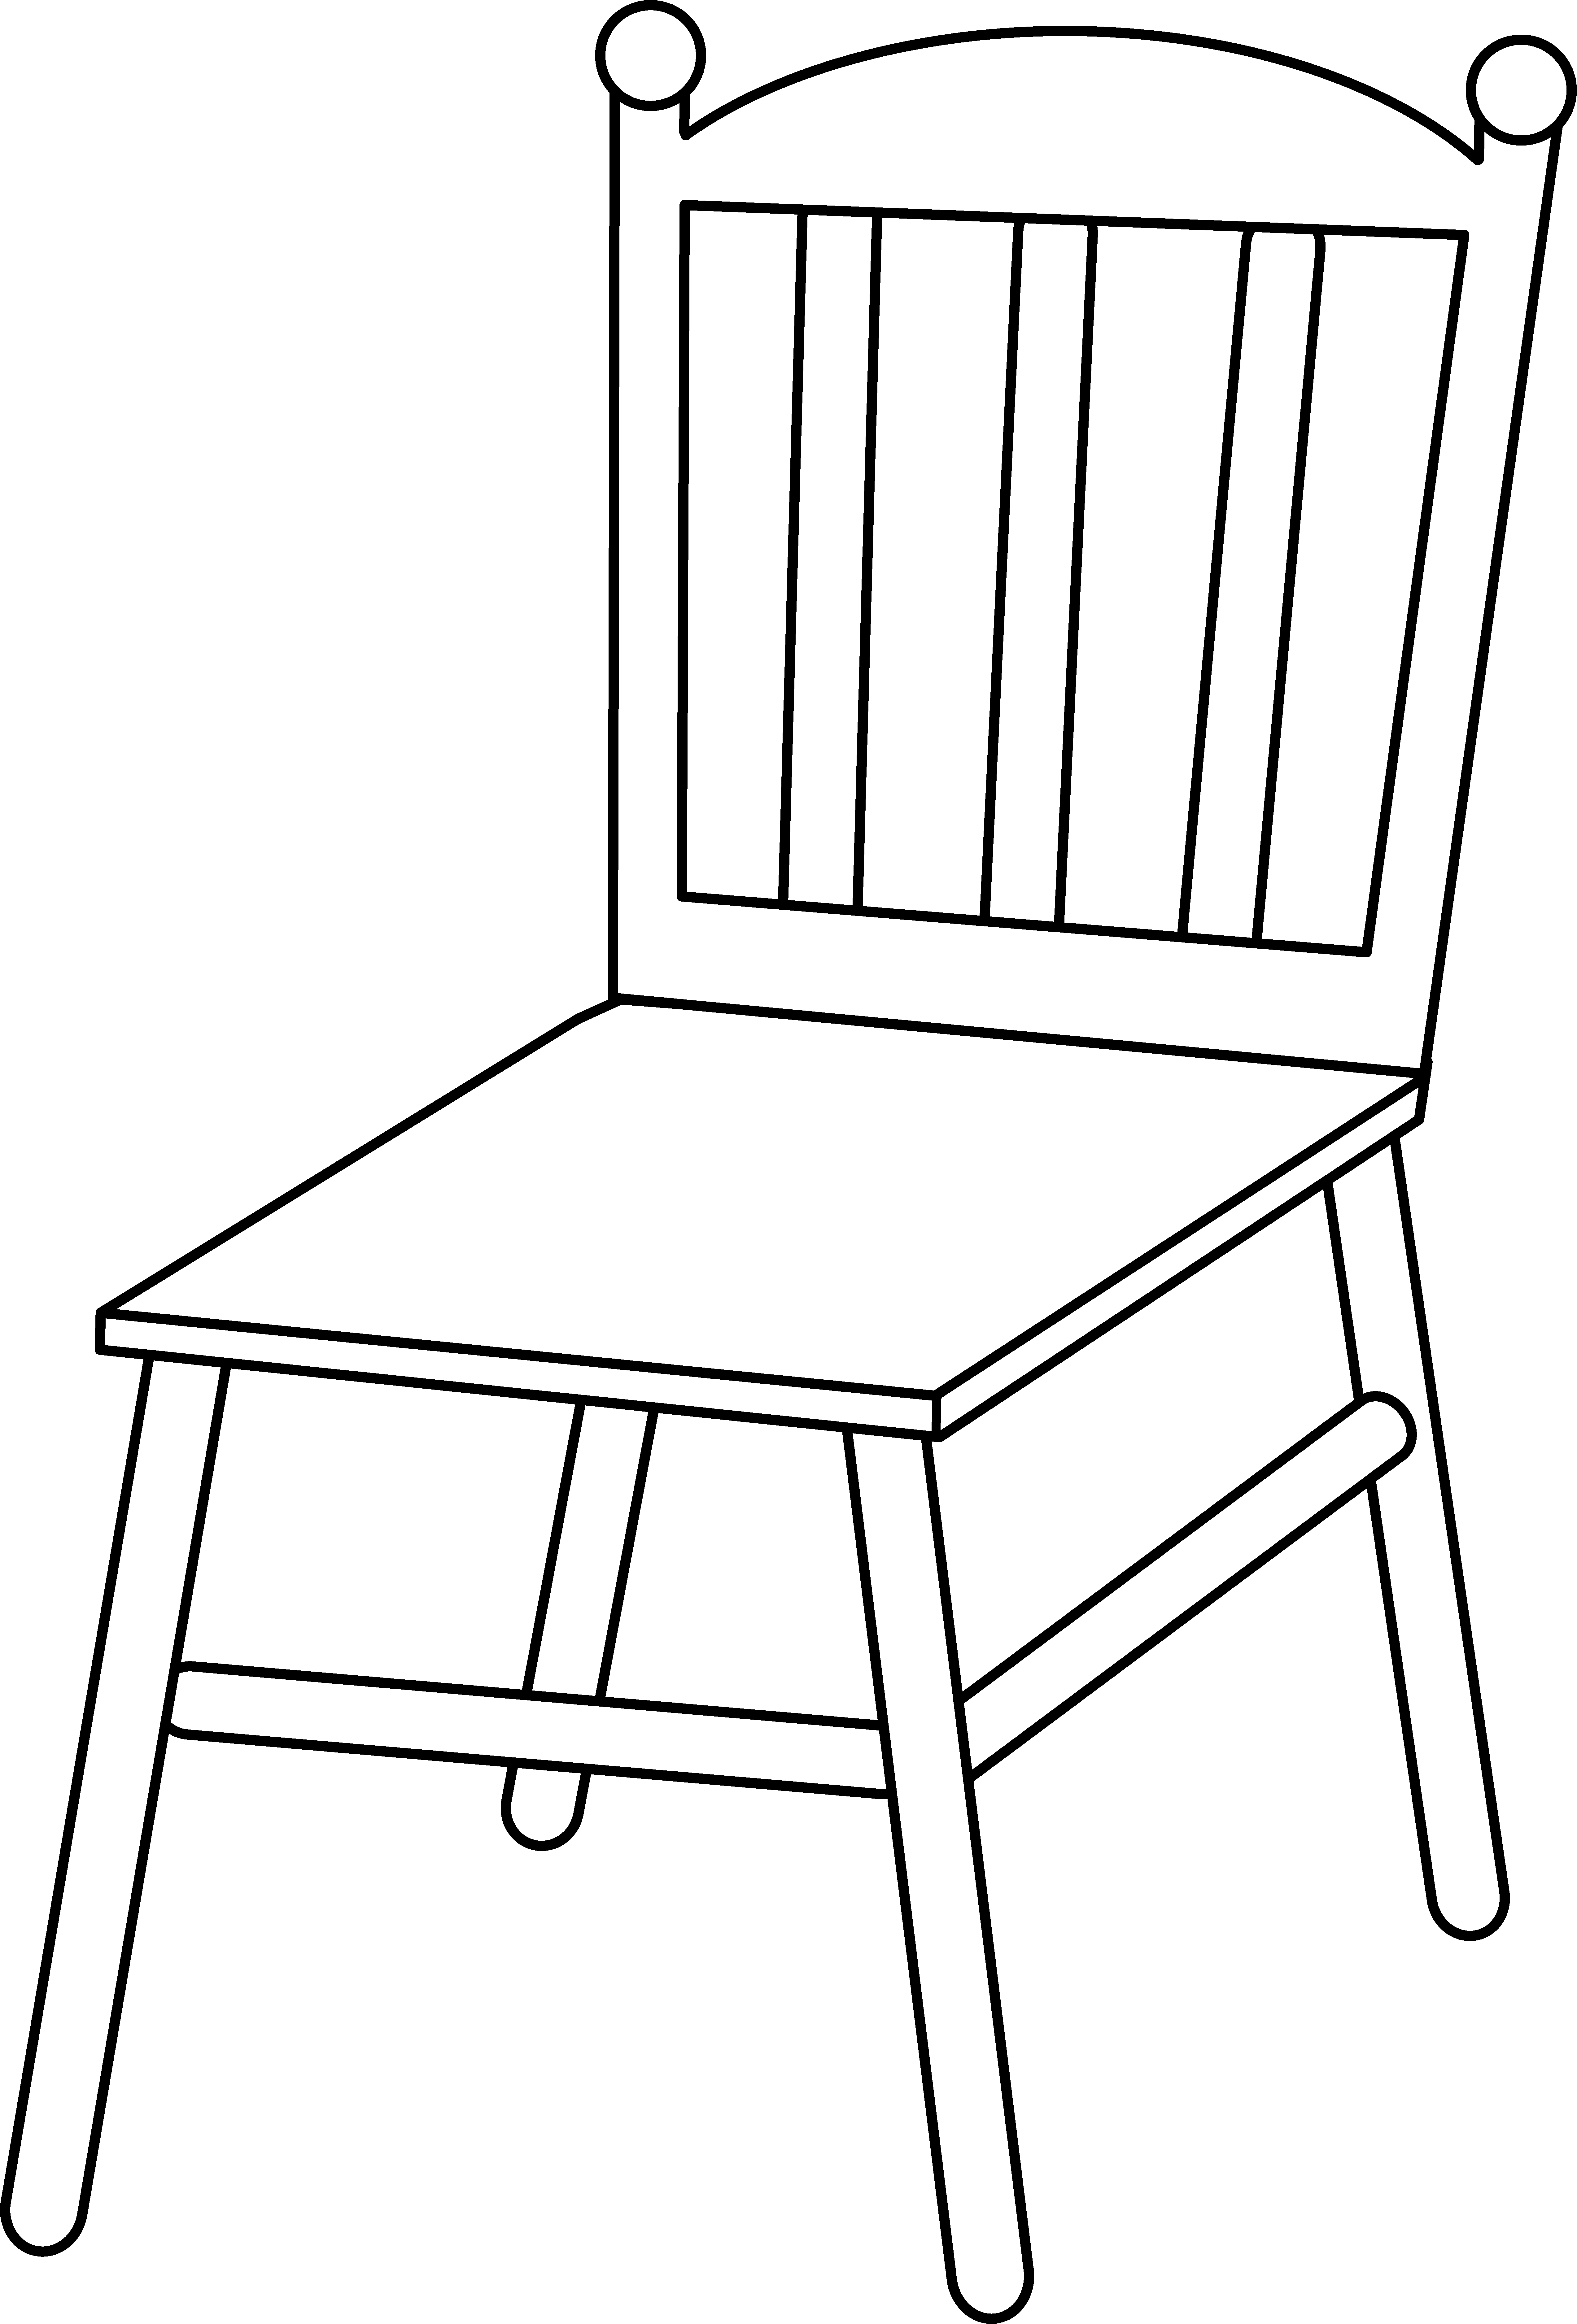 Free Simple Drawing Download Free Clip Art Free Clip Art